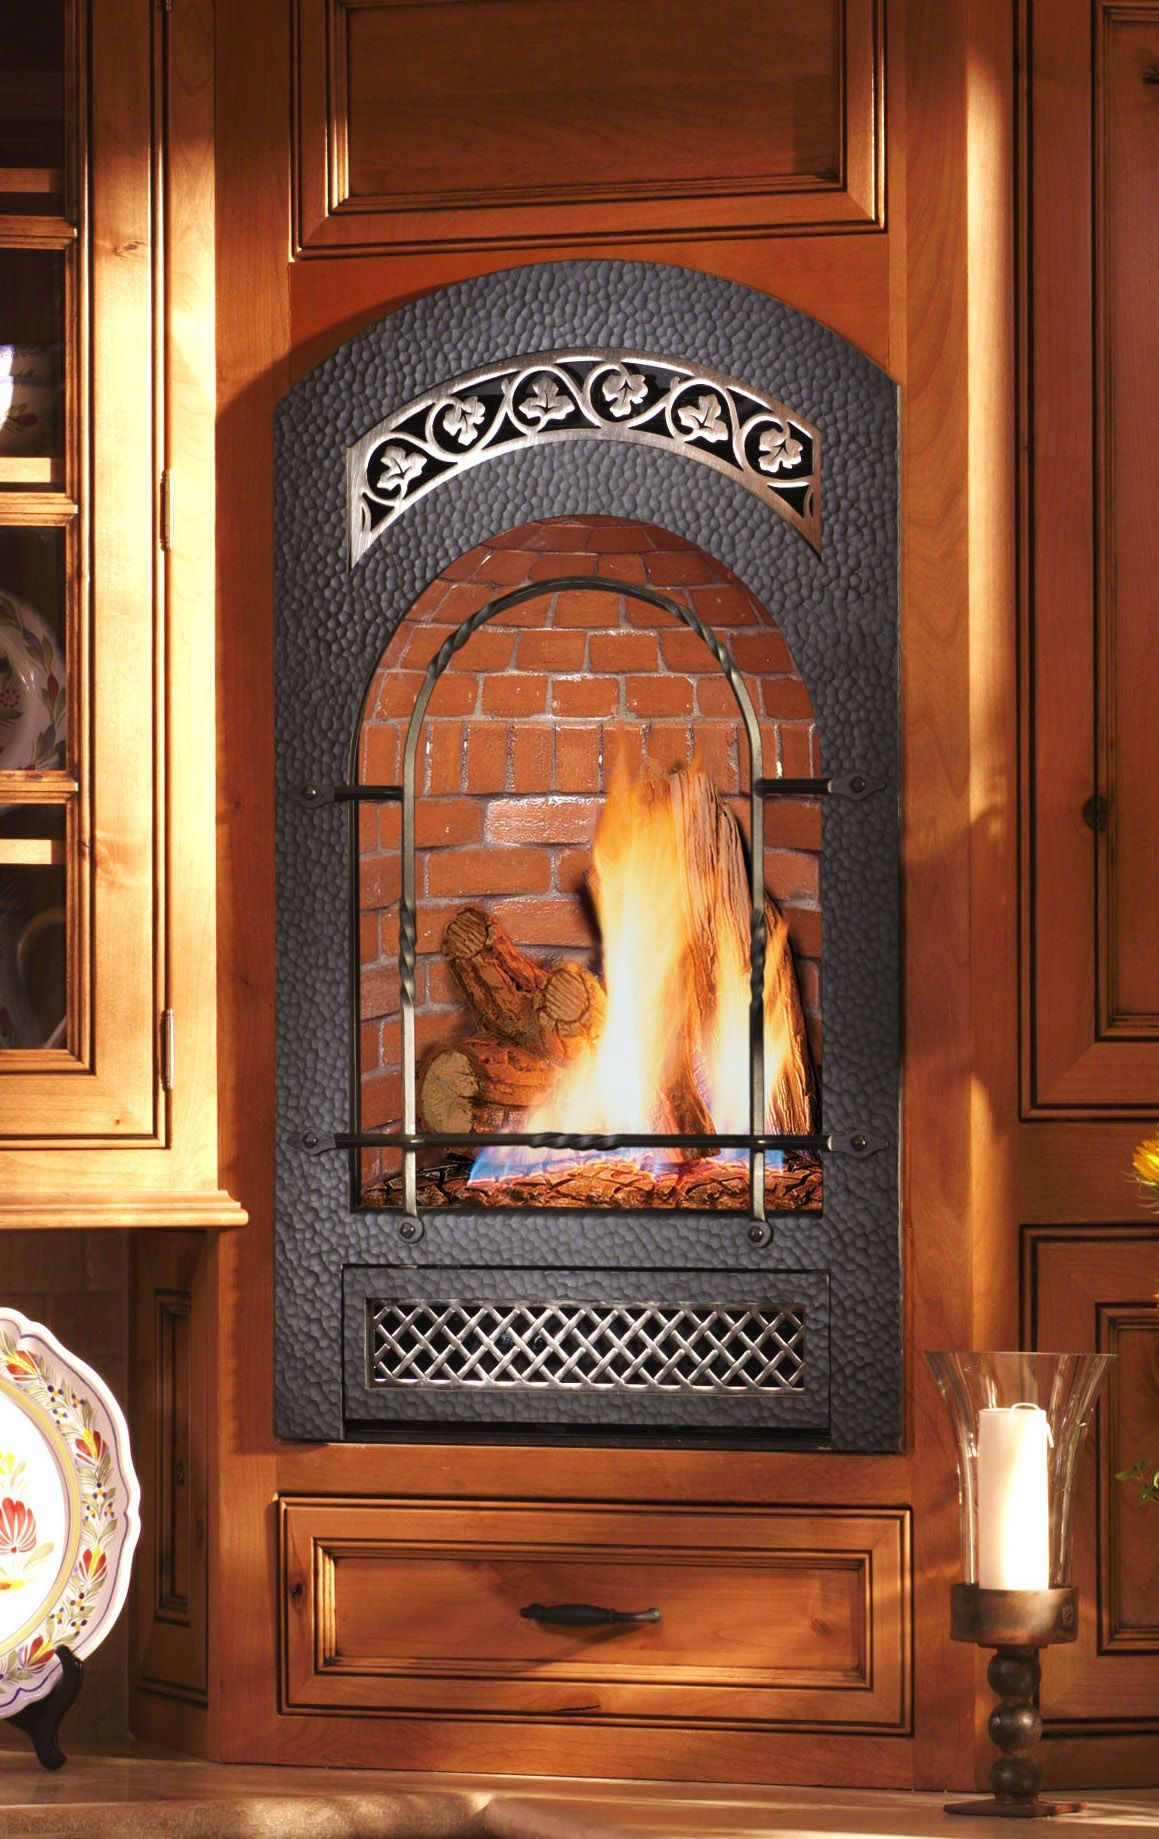 Amazing Propane Gas Fireplace Home Decor And Garden Ideas In 2021 Natural Gas Fireplace Small Gas Fireplace Wall Mounted Fireplace Ventless wall mount gas fireplace